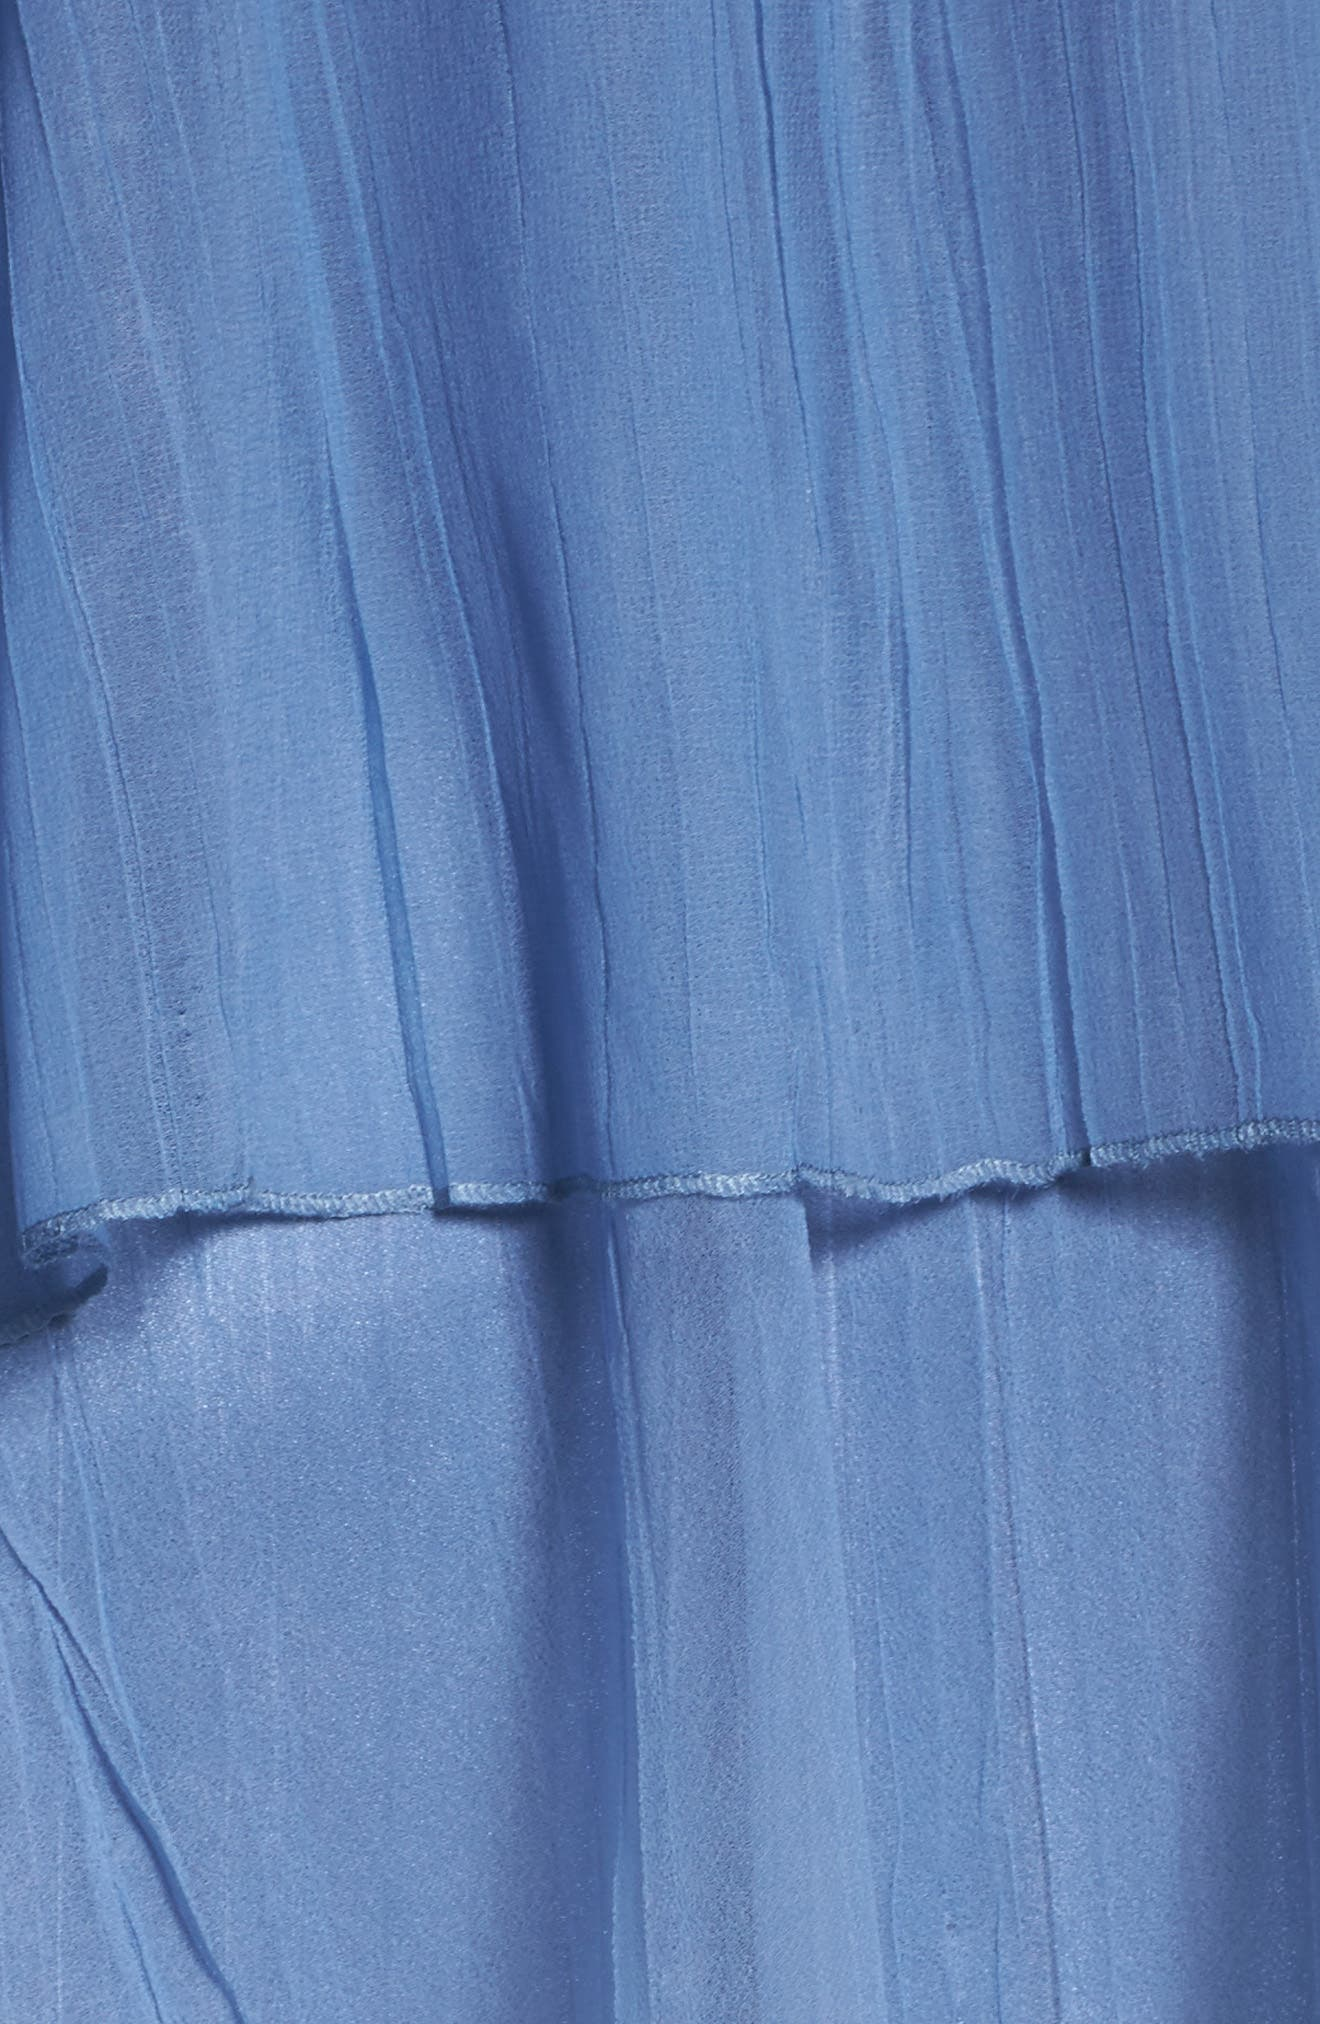 Tea-Length Dress with Capelet,                             Alternate thumbnail 5, color,                             Persian Violet Blue Ombre